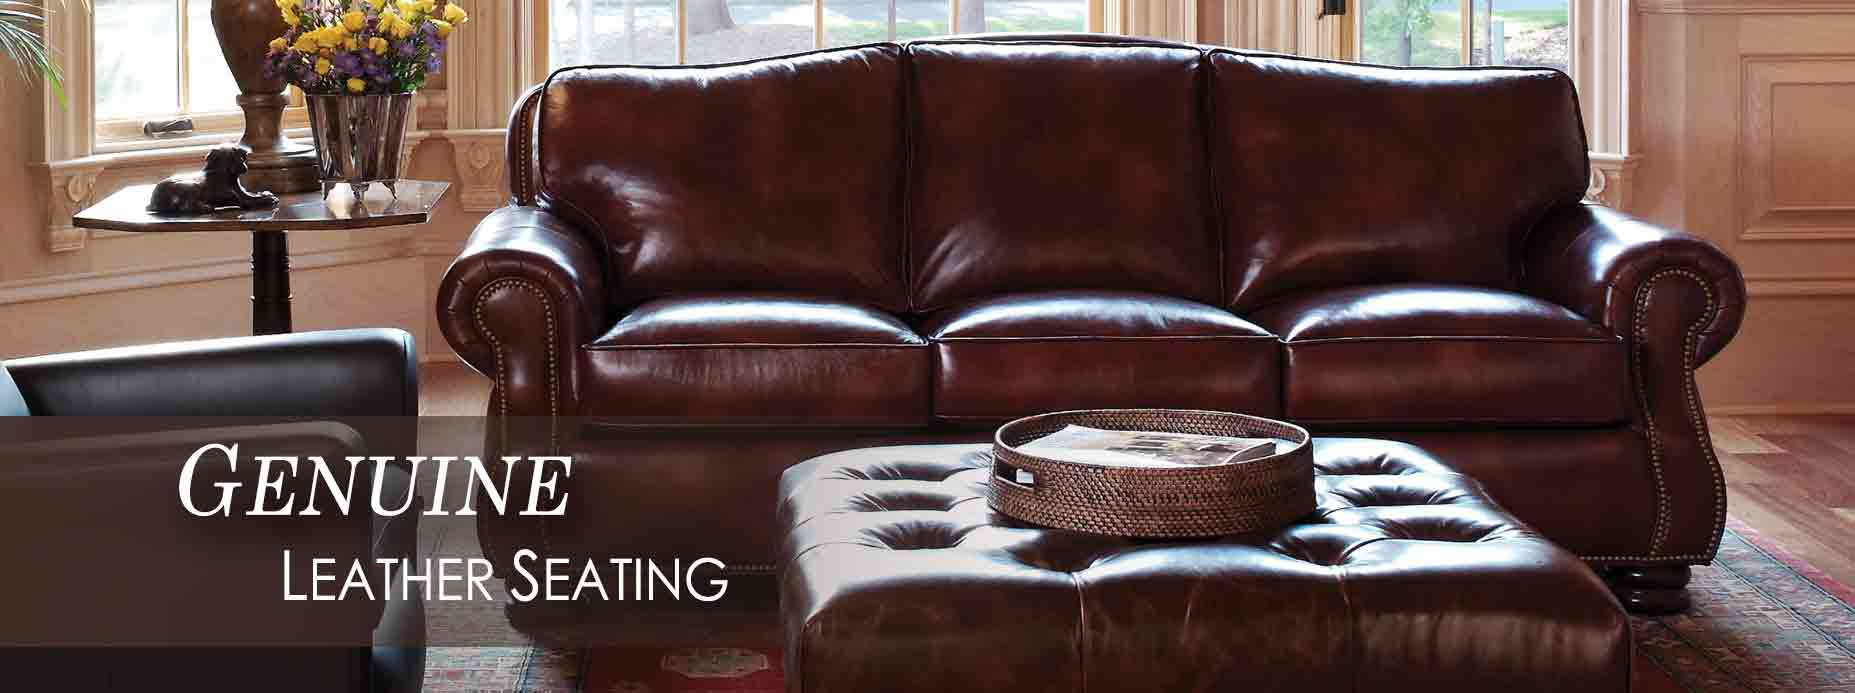 LEATHER SOFAS, RECLINERS, CHAIRS, SECTIONALS U0026 MORE